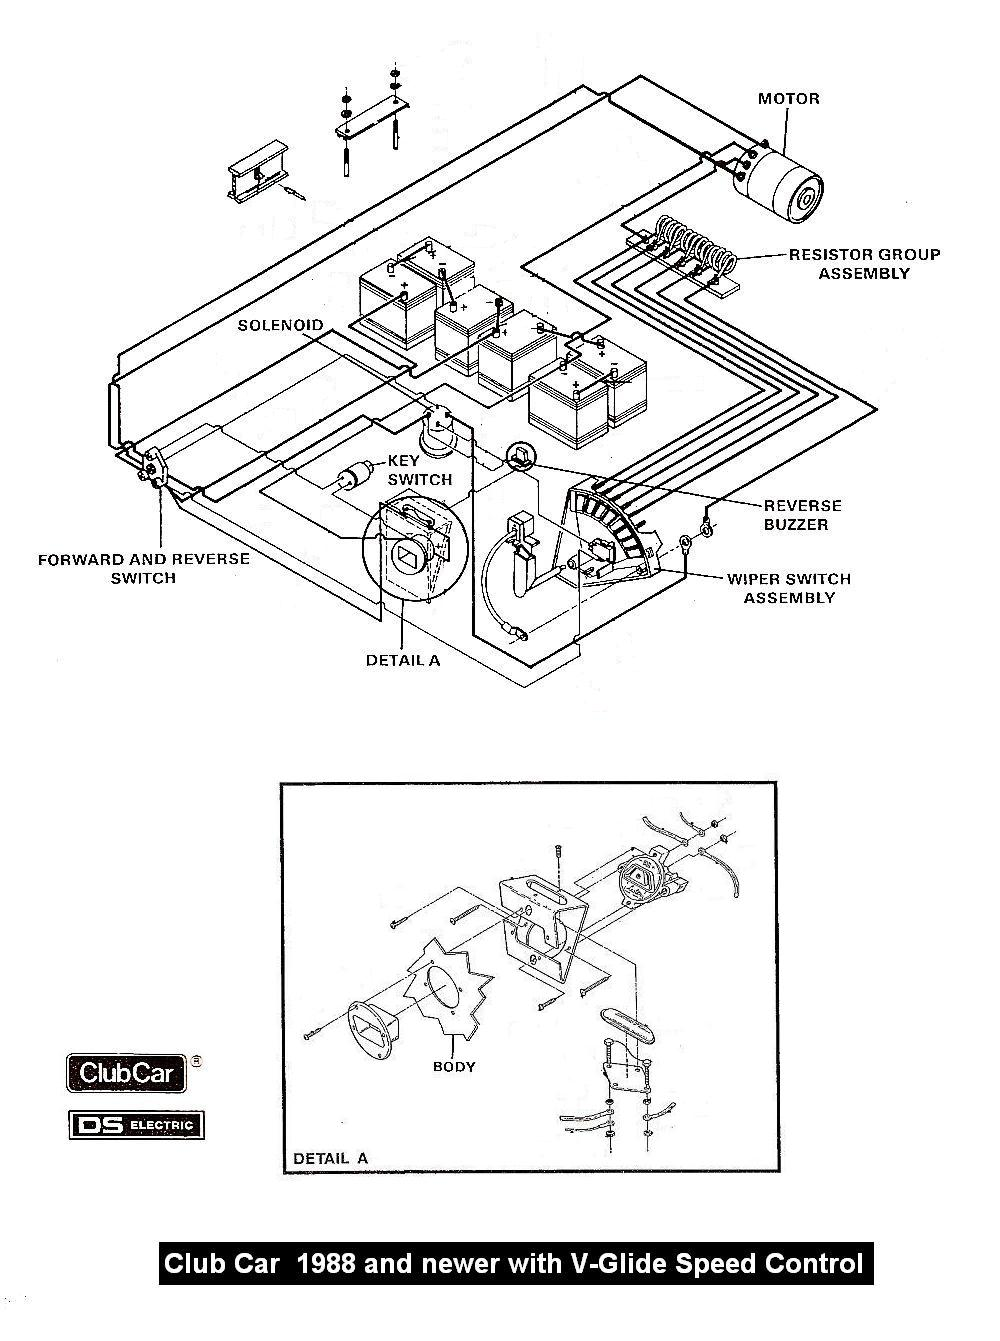 medium resolution of 1979 club car schematic diagram simple wiring schema for 48 volt club car golf cart wiring diagram club car gas golf cart wiring diagram